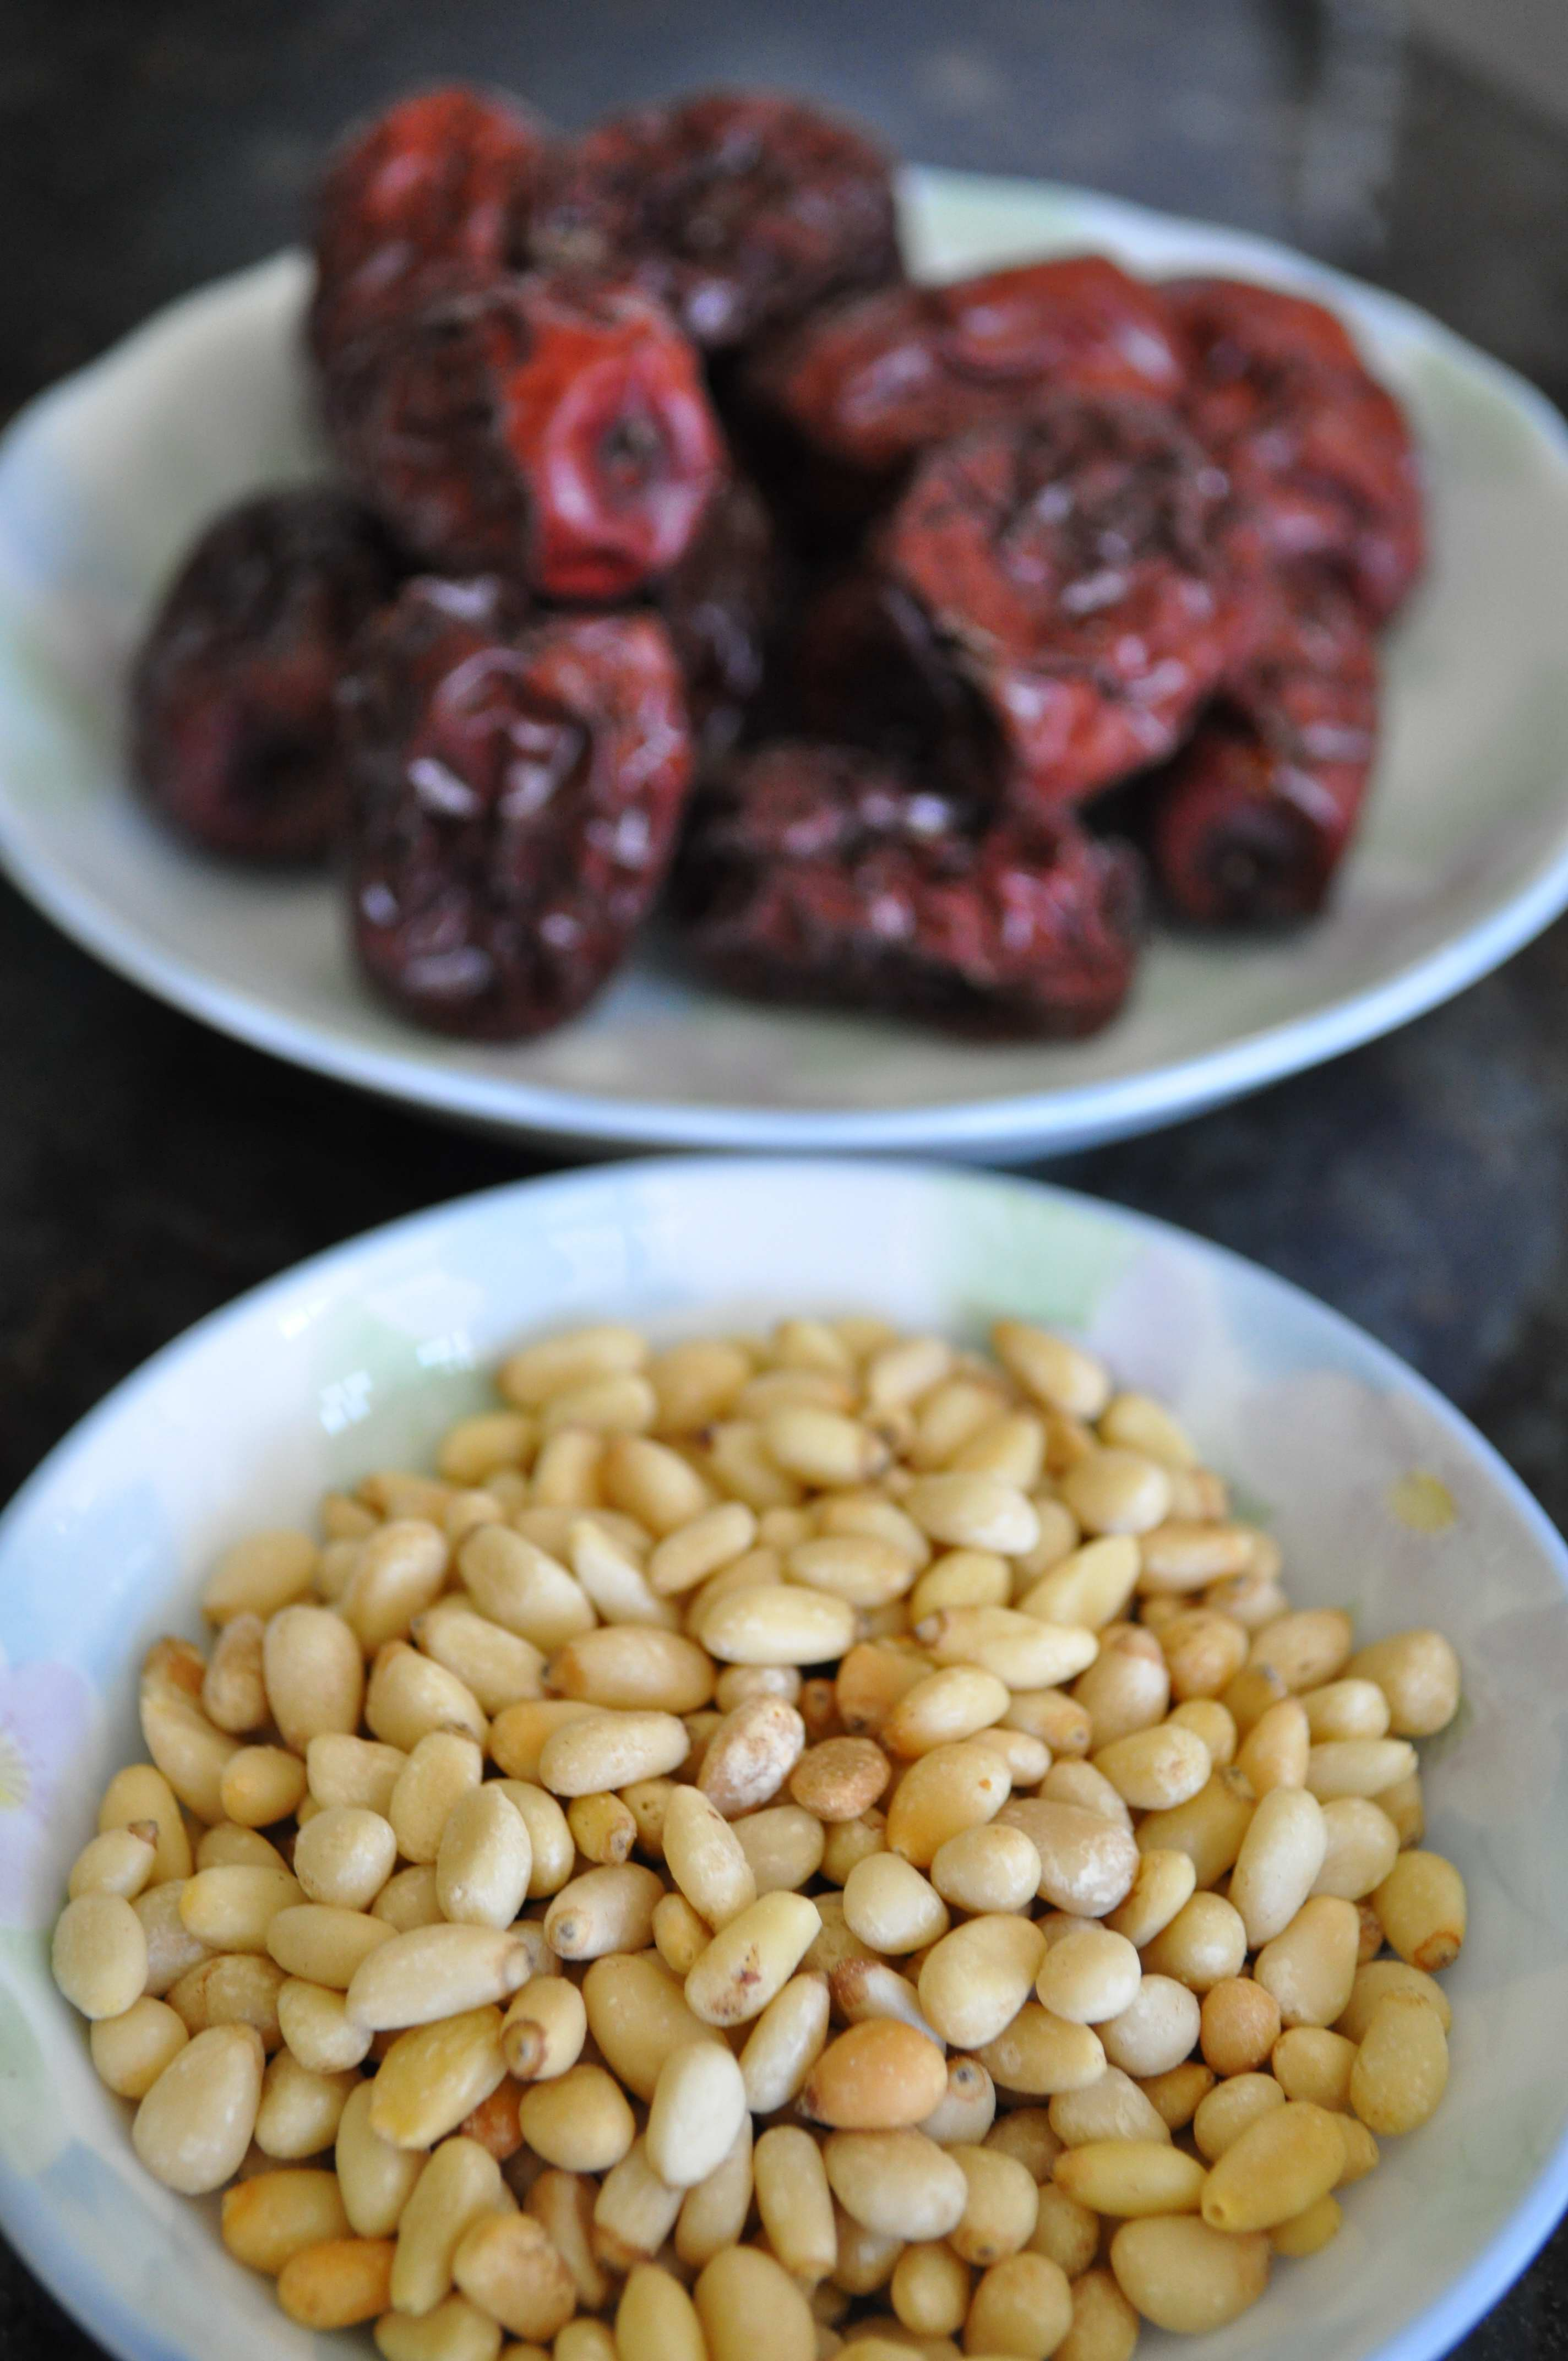 pine nuts and jujubes